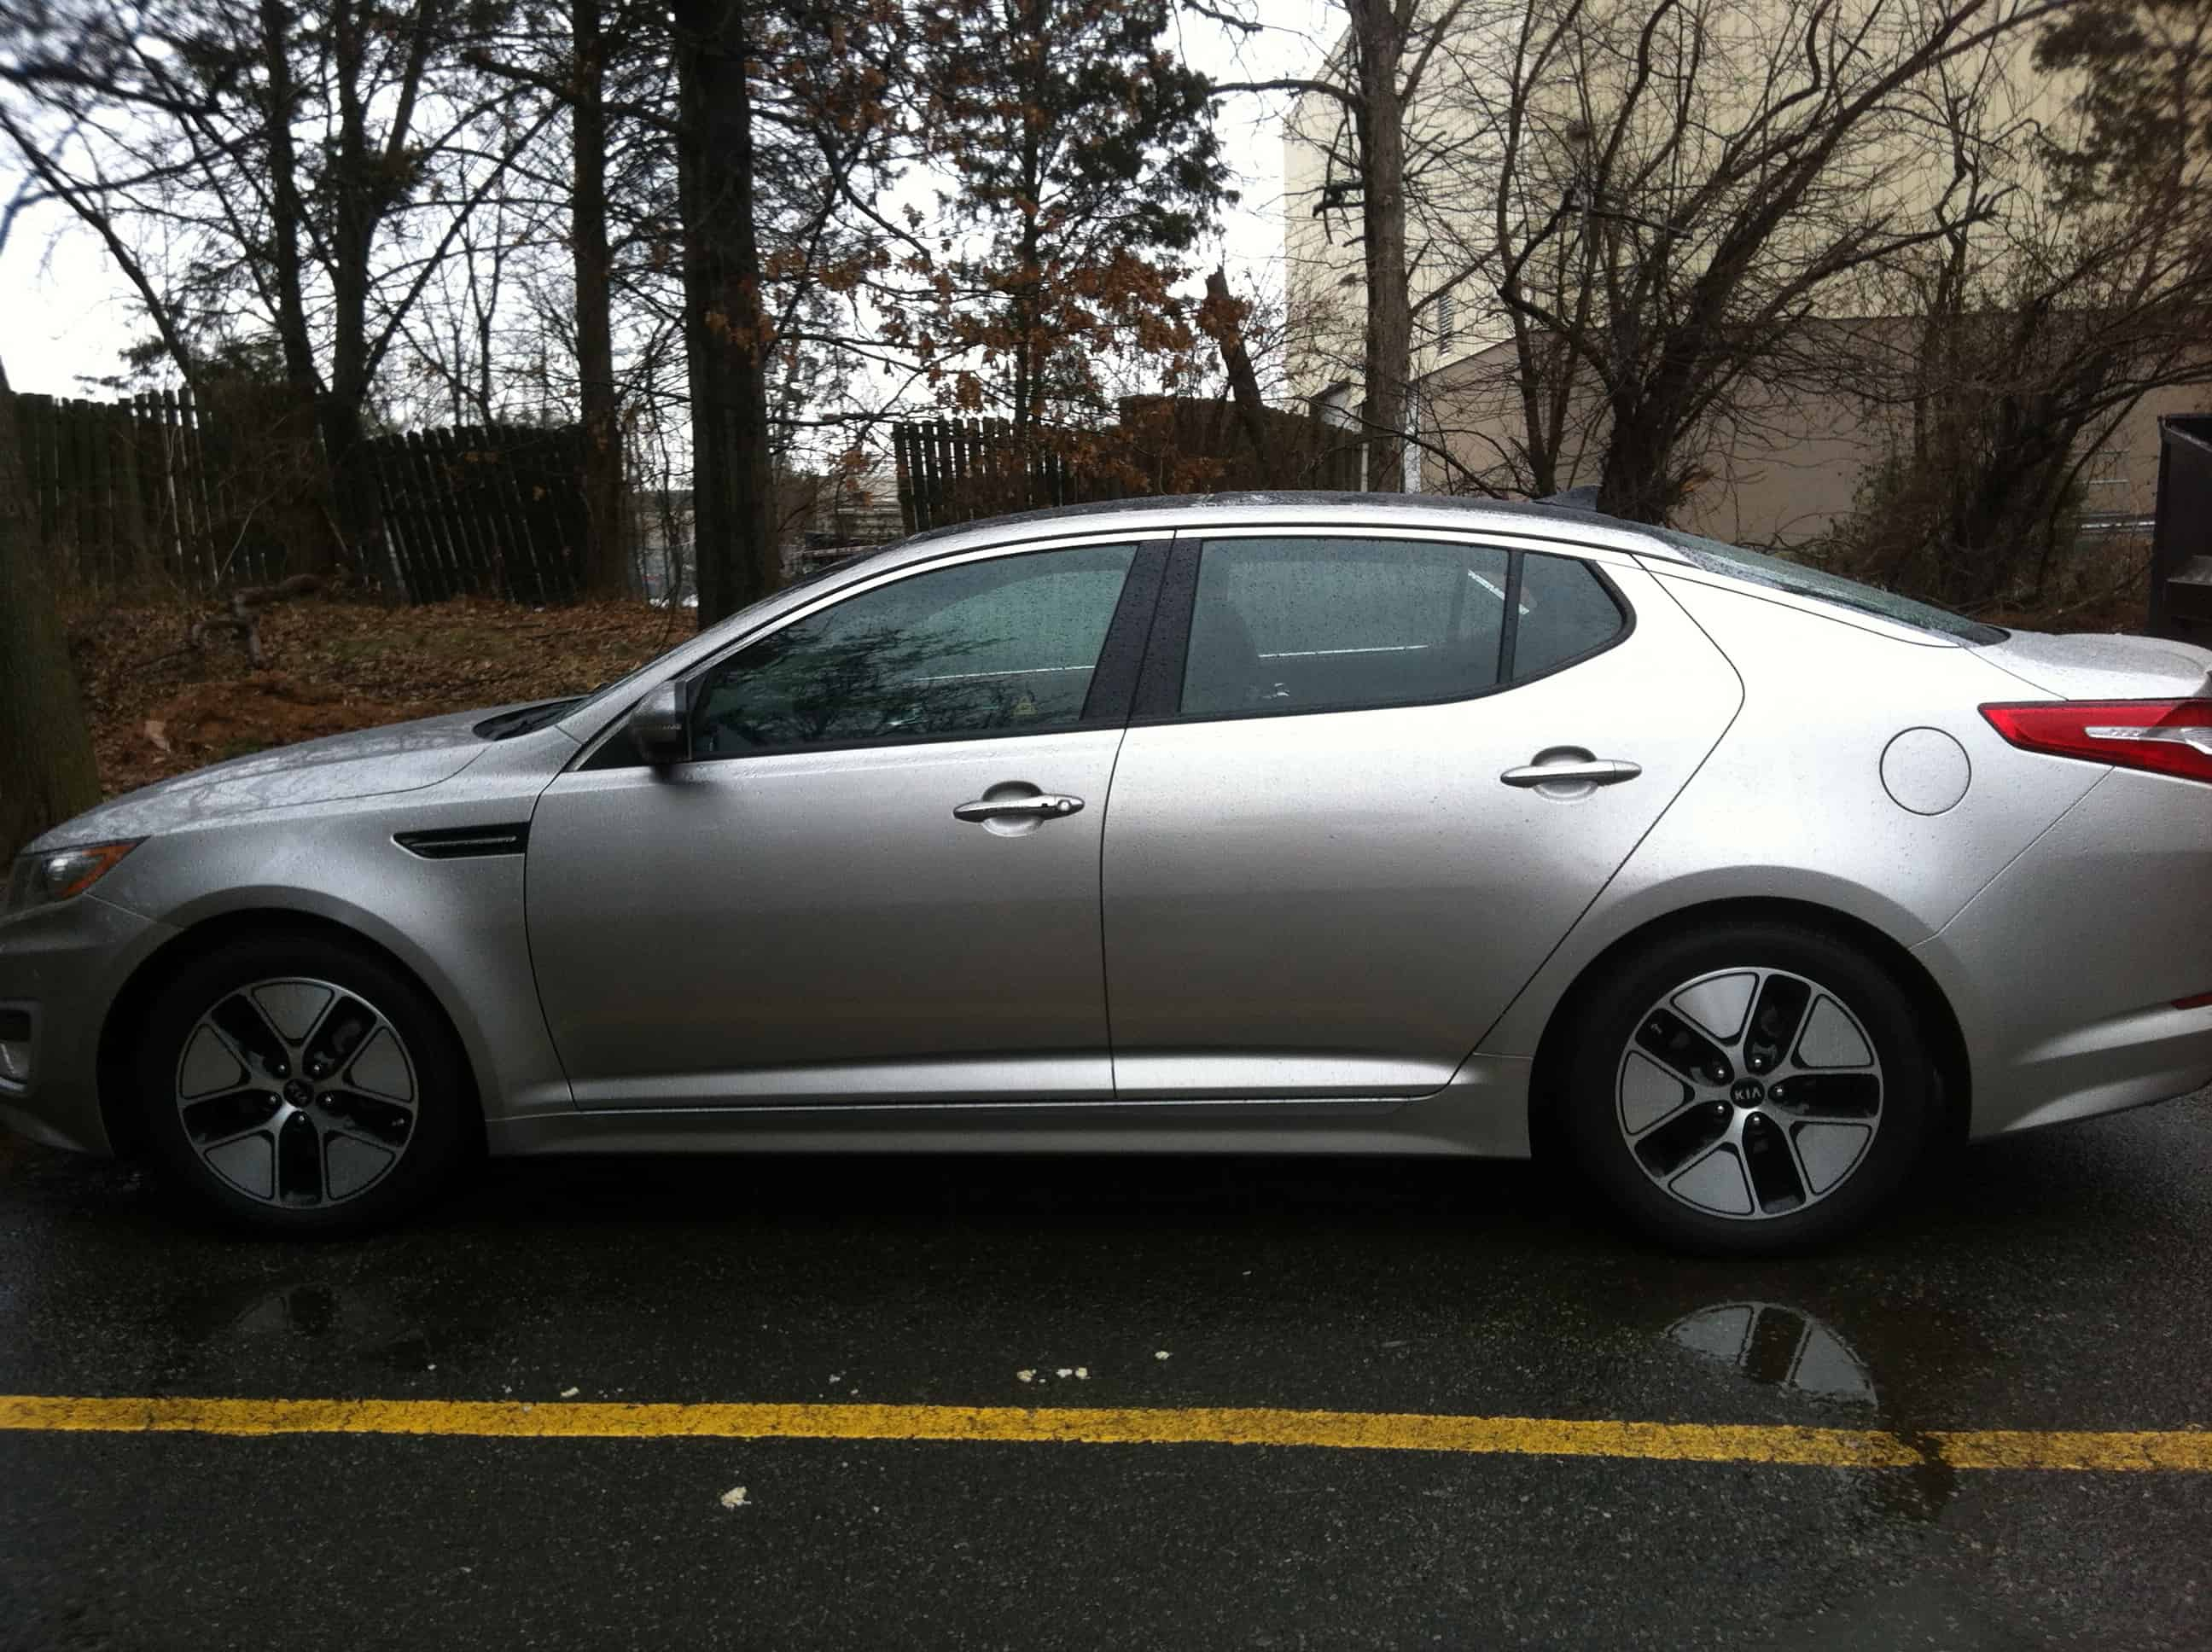 ex of a optima sunroof spark kia review creativity hybrid